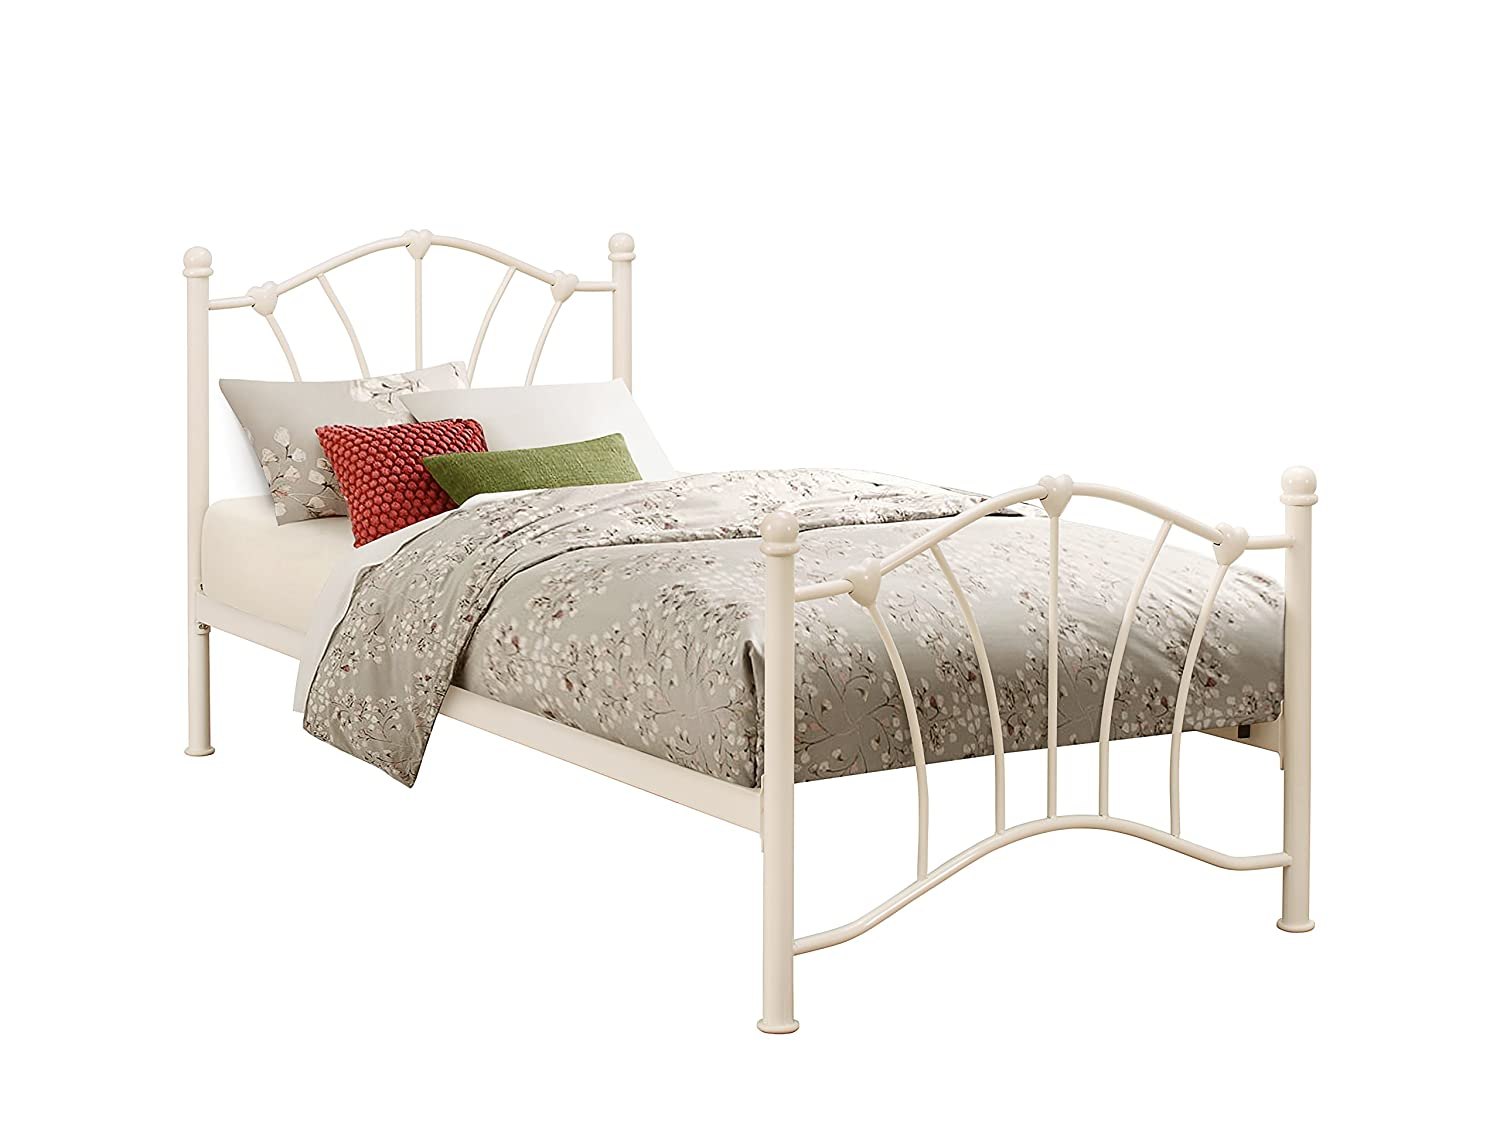 Single metal bed frames - Single Metal Bed Frames 38